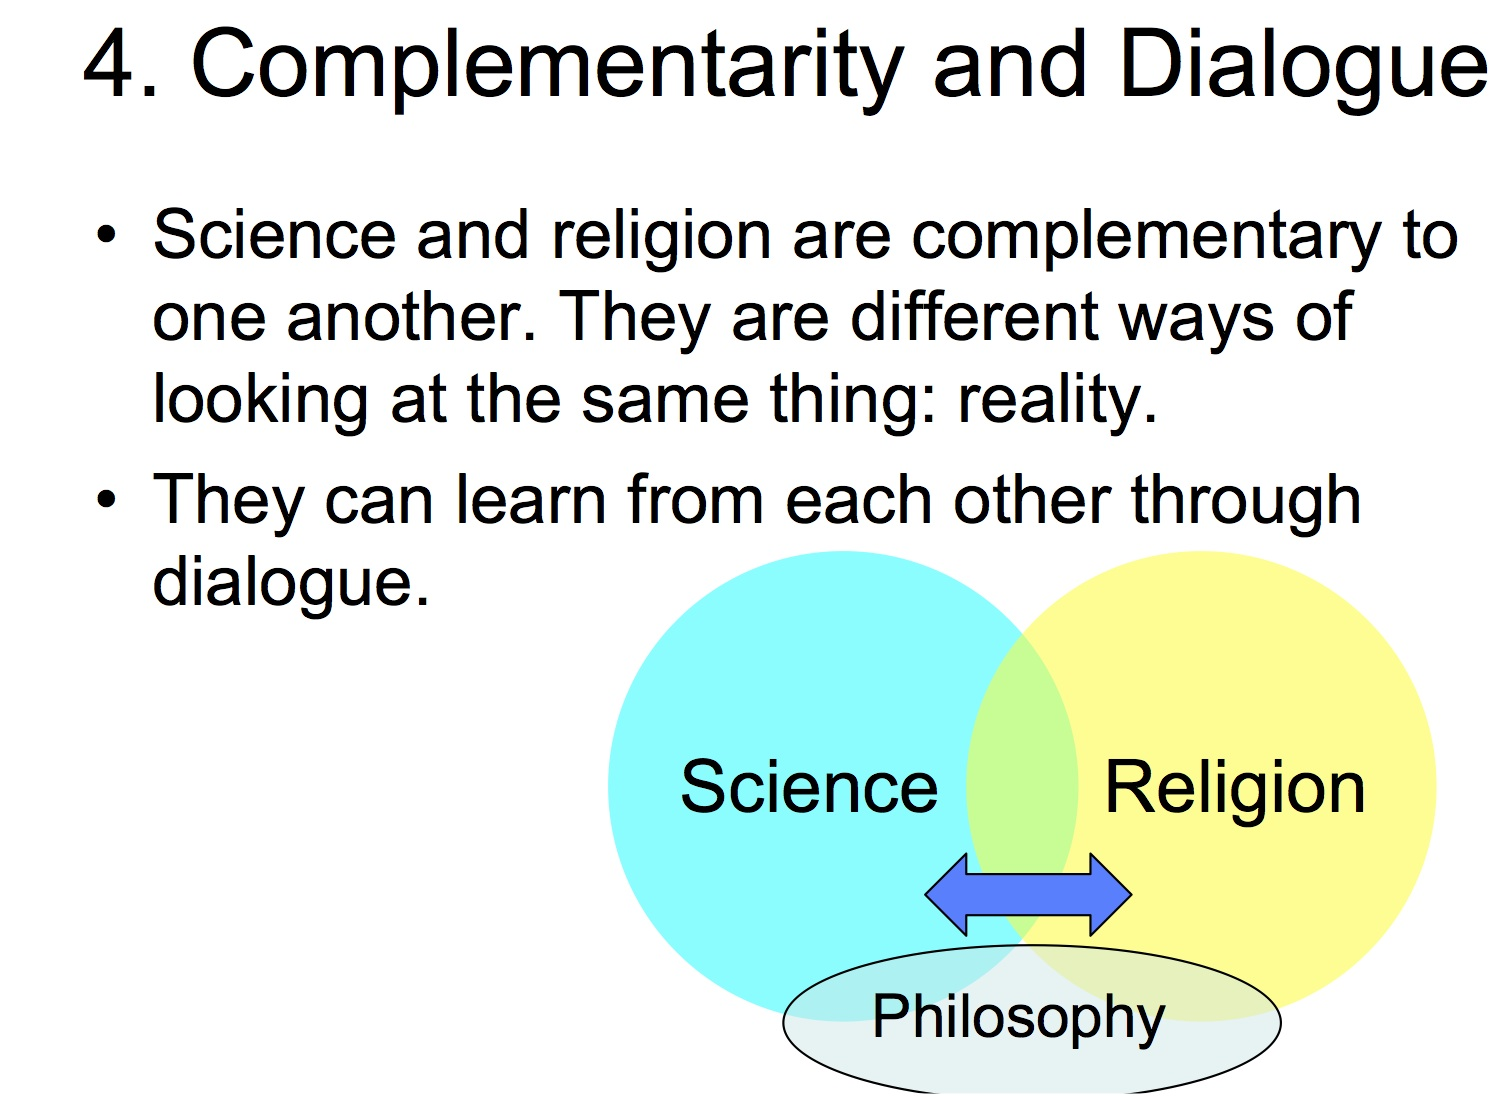 dialogue thesis science and religion In their enthusiasm to preclude religion from every sphere of culture, some otherwise clear-thinking scientific thinkers, instead of saying that it is possible to articulate and follow moral principles without the paraphernalia of traditional religions, make statements to the effect that science can teach us all morality as well.